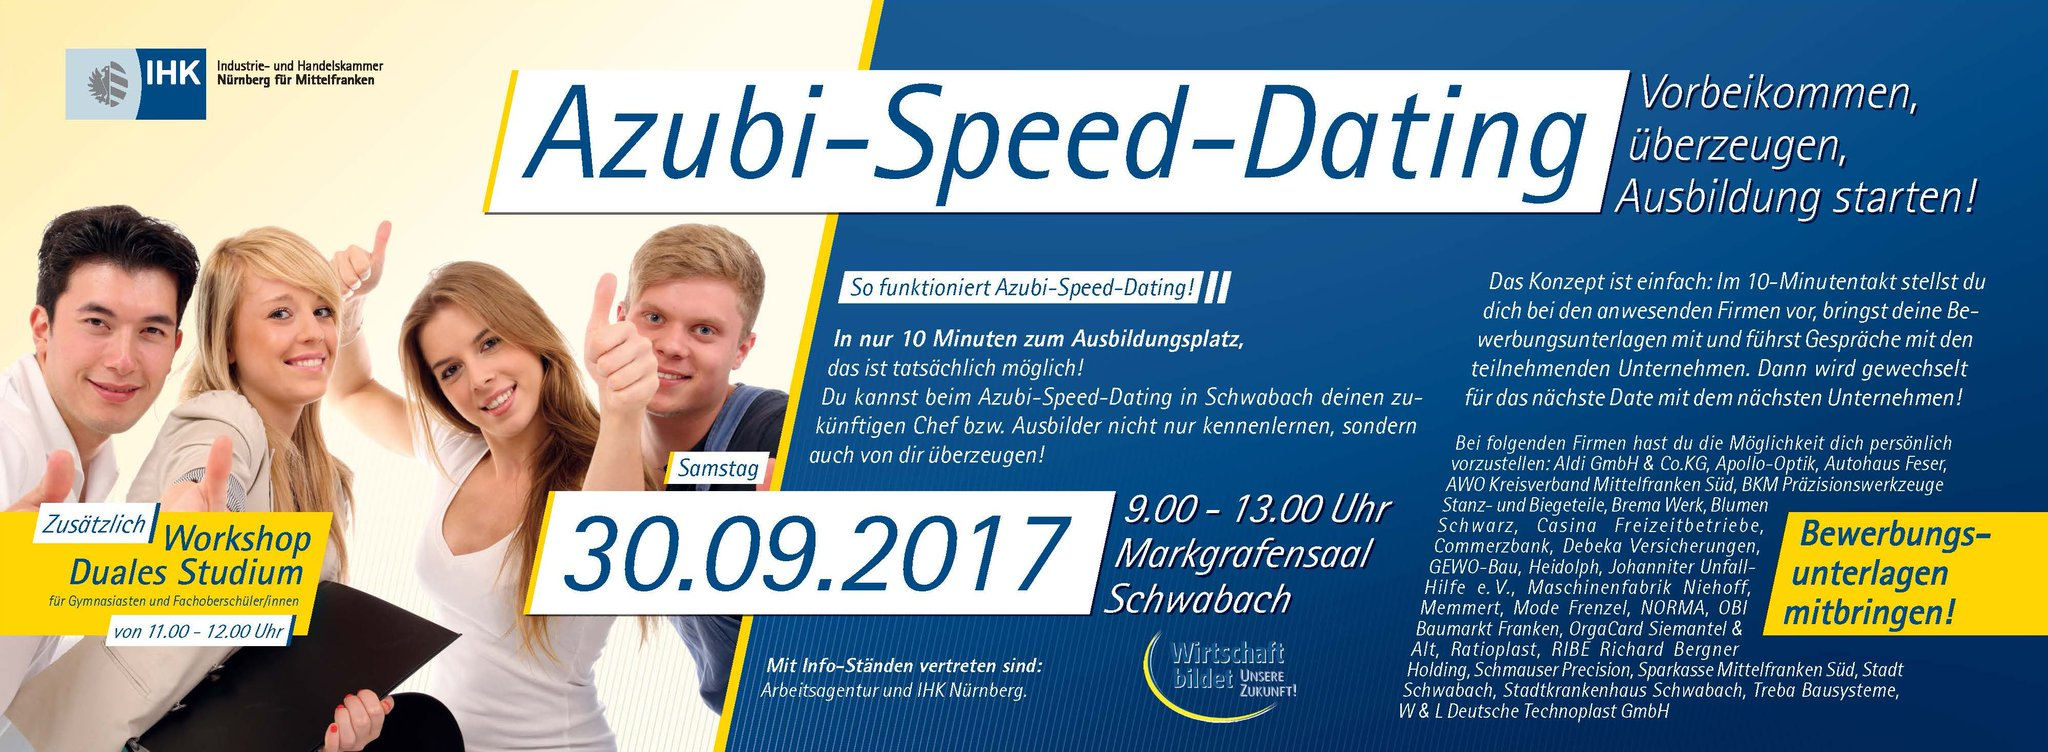 ihk azubi speed dating schwabach